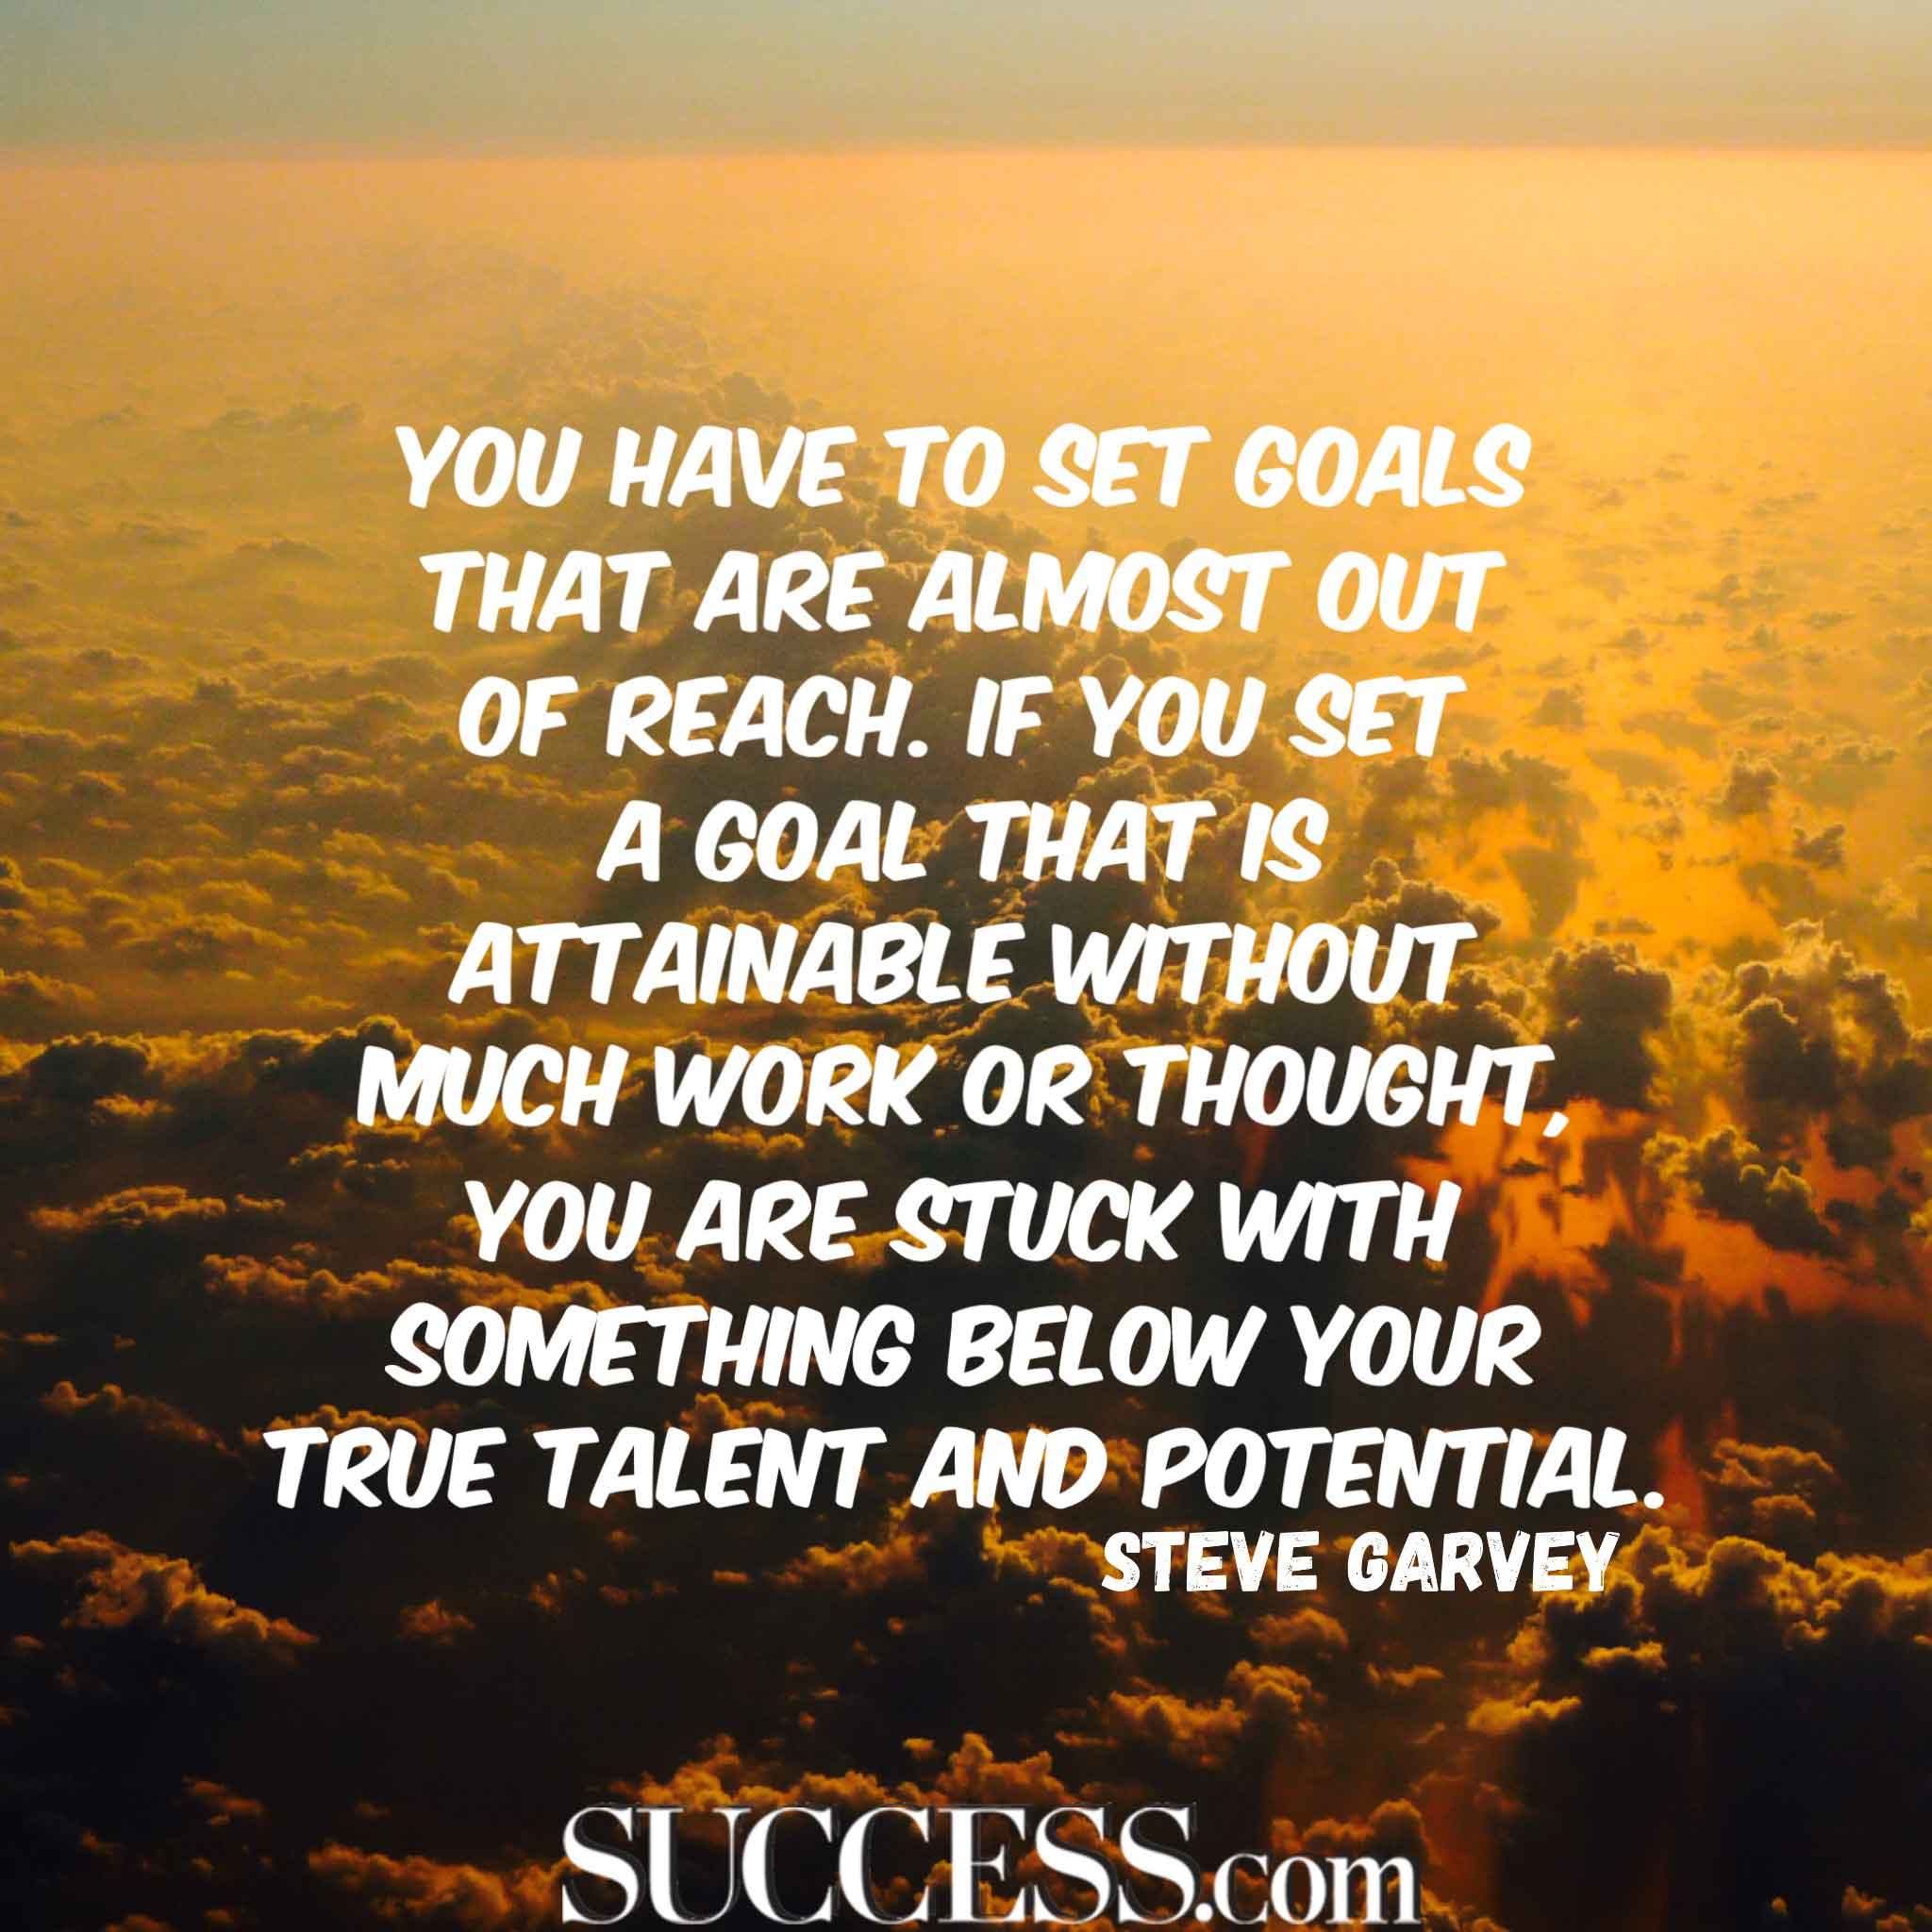 Success Motivational Quotes: 18 Motivational Quotes About Successful Goal Setting